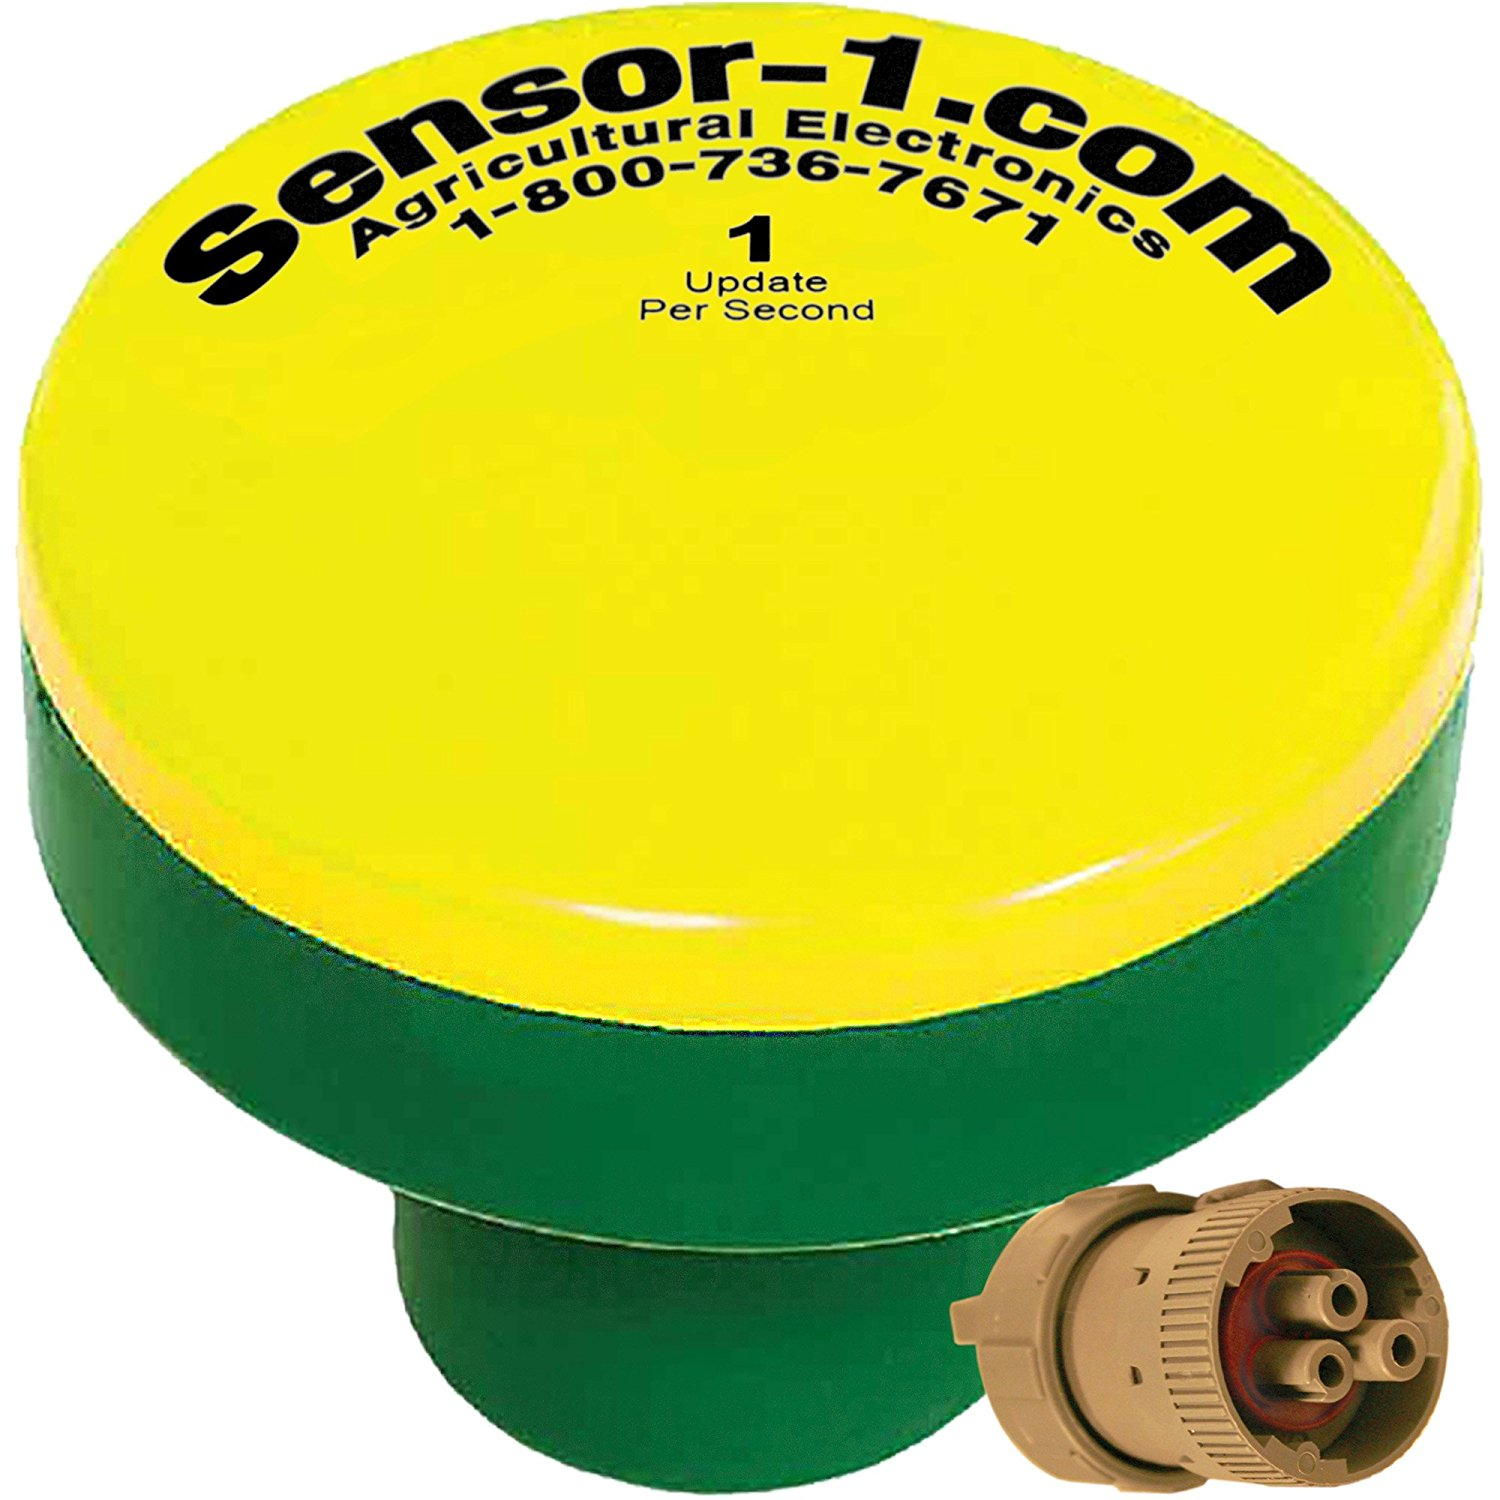 Sensor-1 DS-GPSM-TJ8551-Y/G 1 Hz GPS Speed Sensor, Yellow Top and Green Stem Housing with Tee-Jet 855 Connector